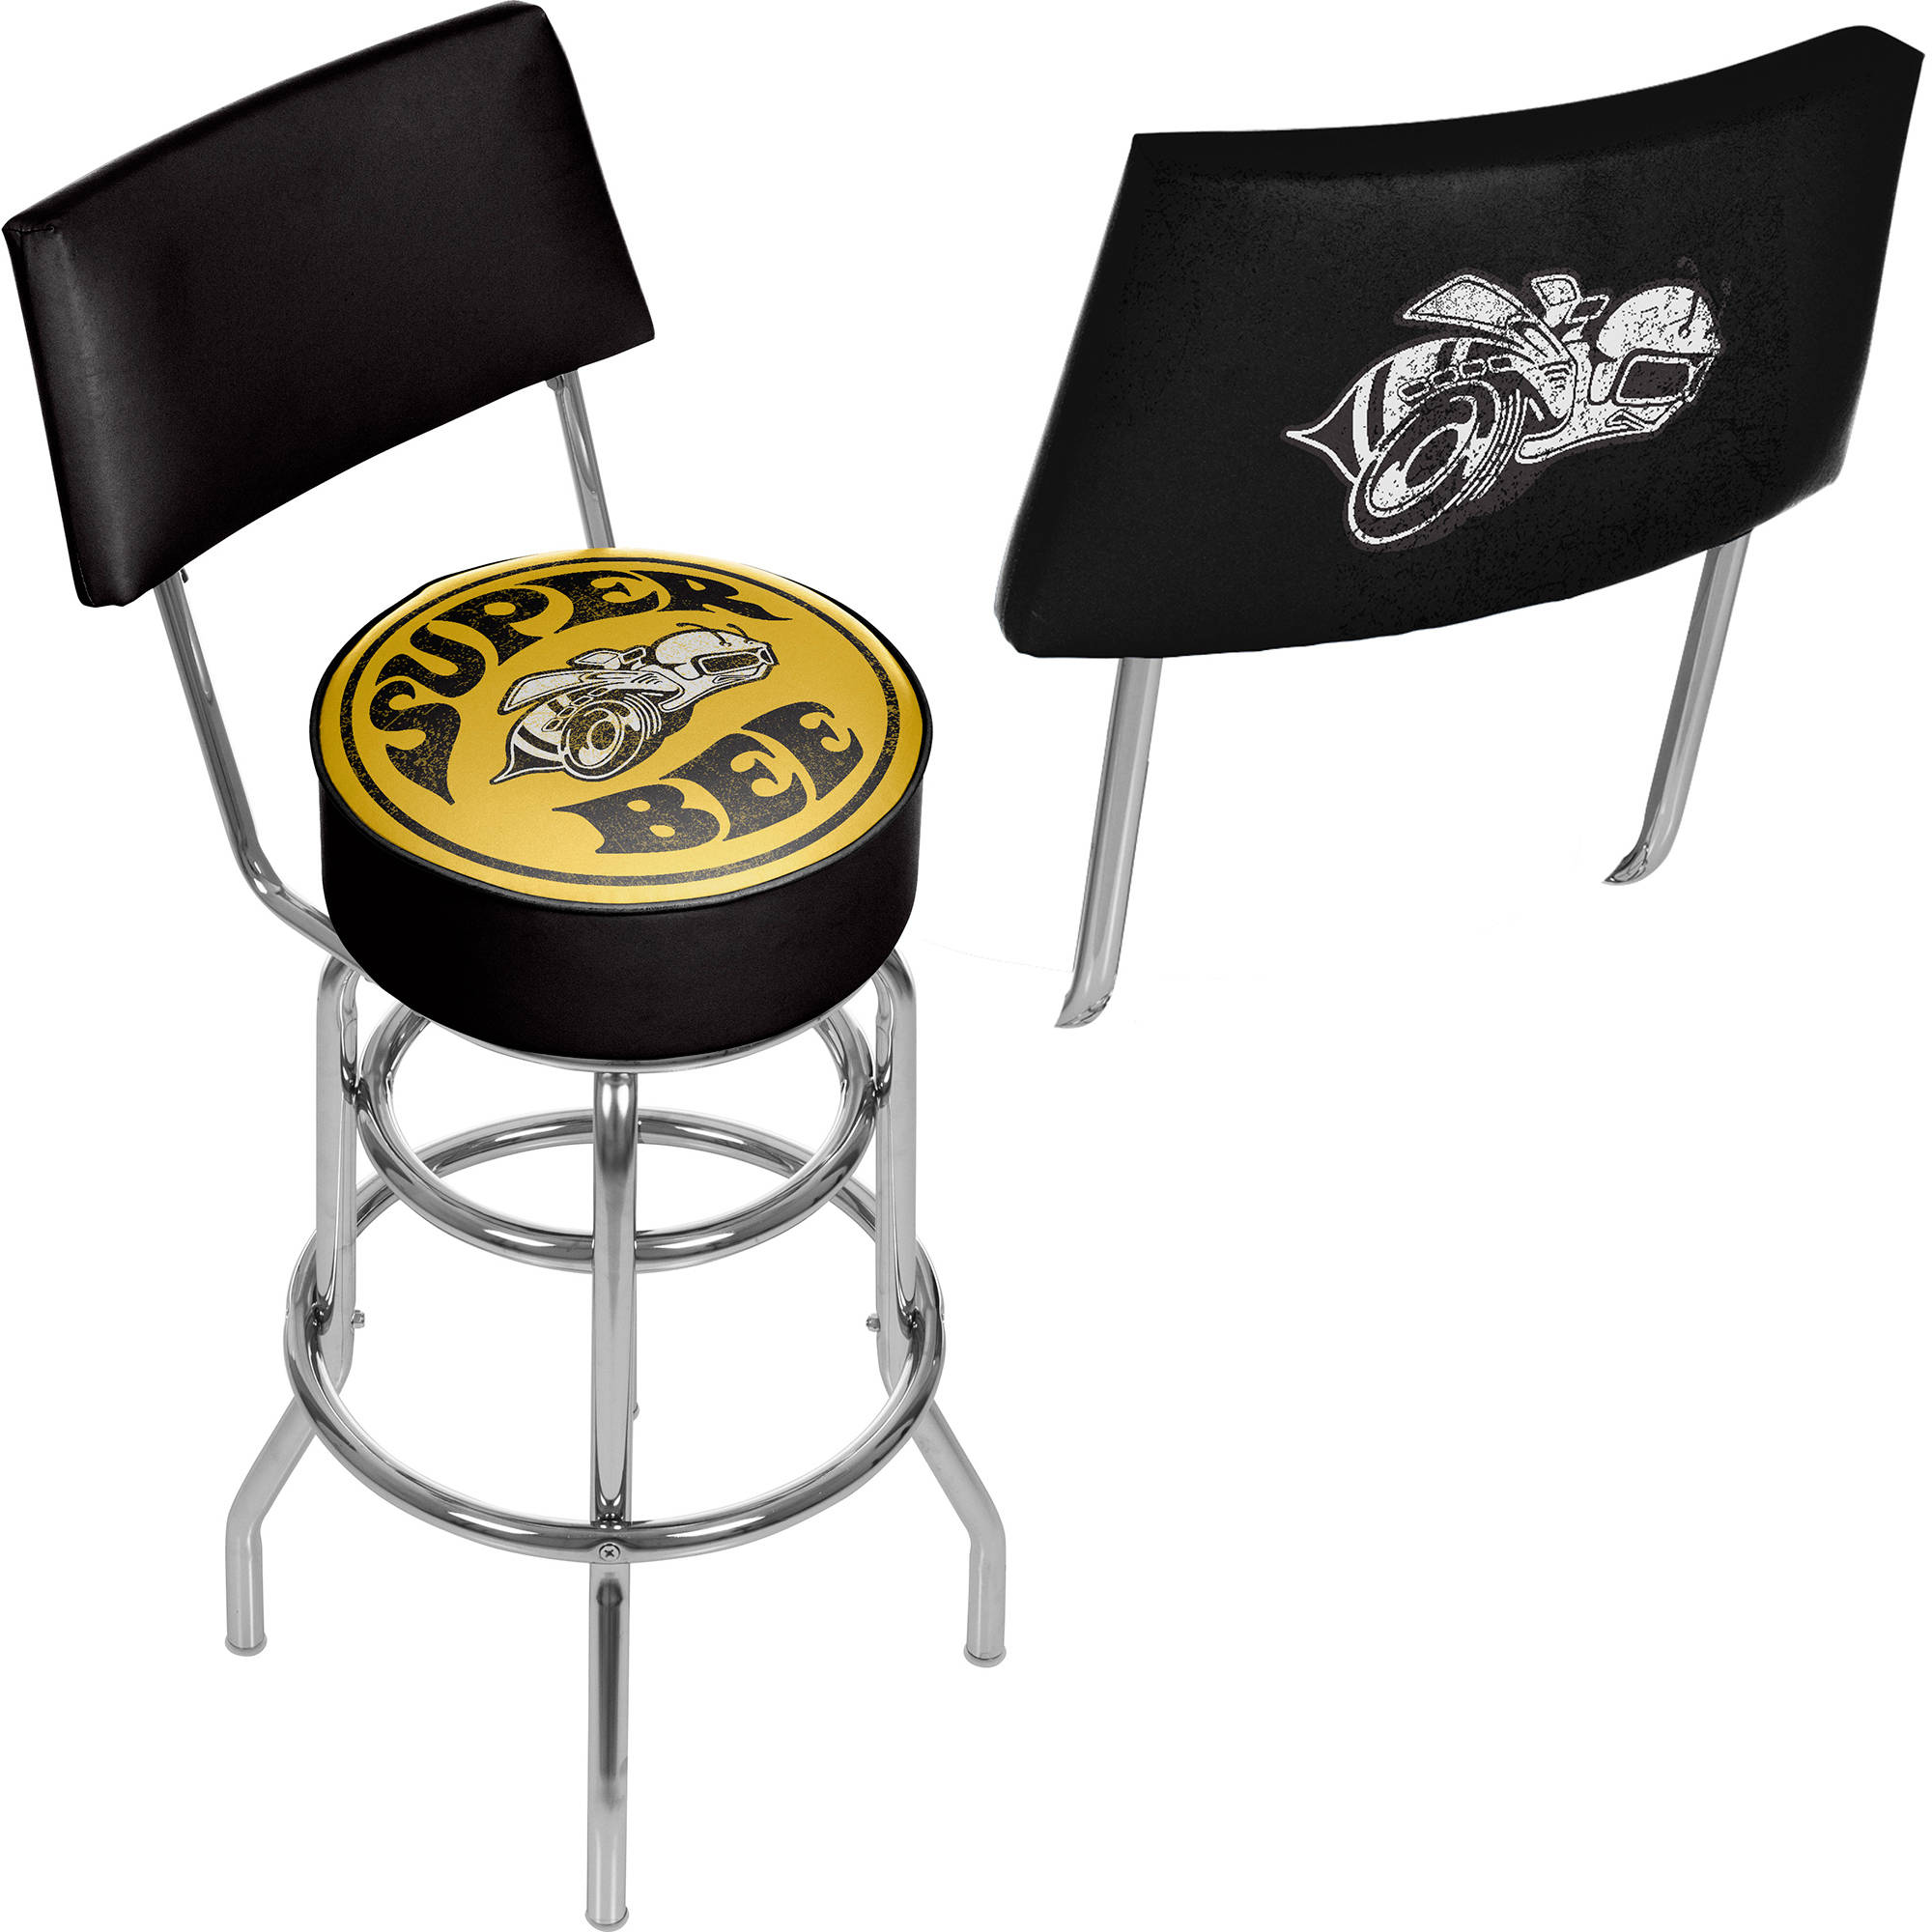 Dodge Swivel Bar Stool with Back, Super Bee